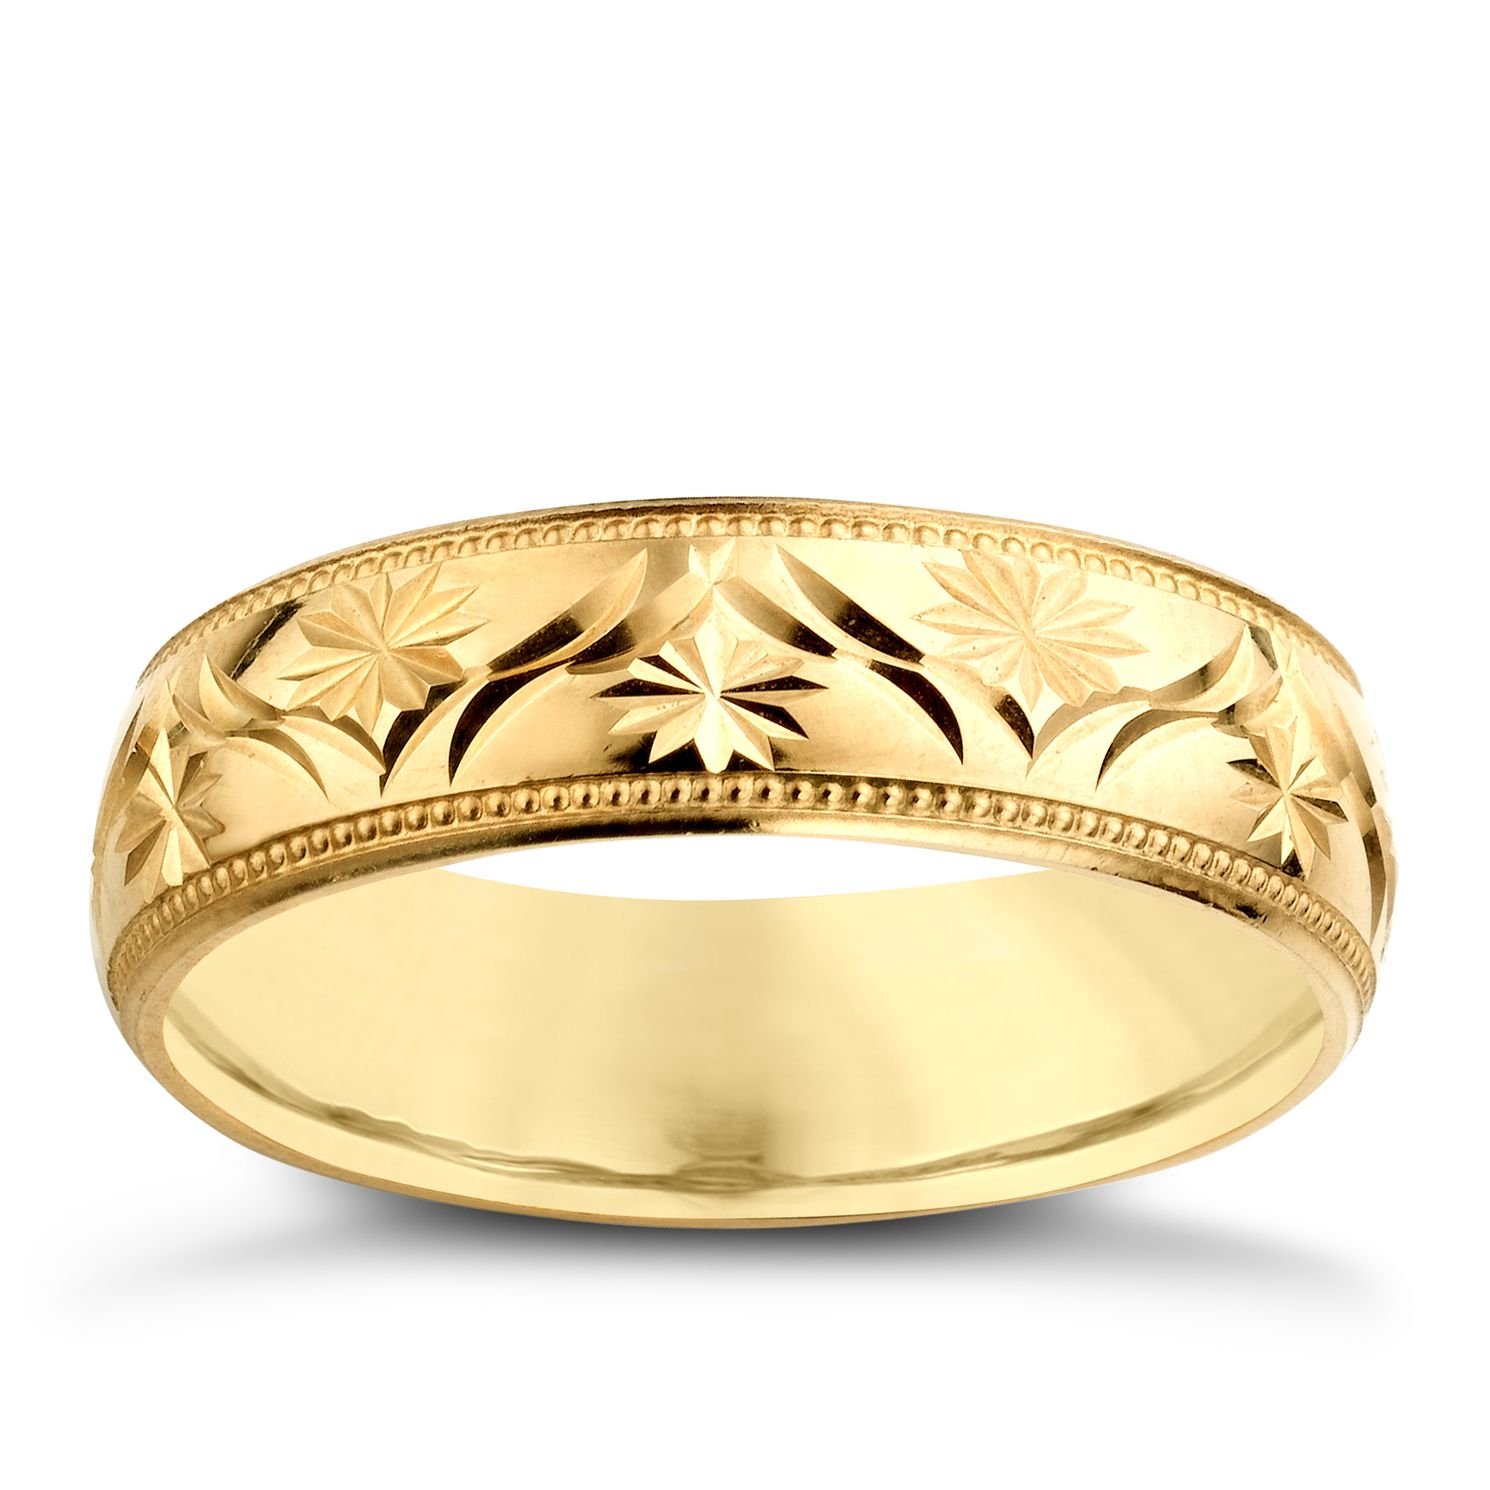 eu men djmt rings accessories fashion golden versace wedding en for engravedgreekkeyring jewellery store online